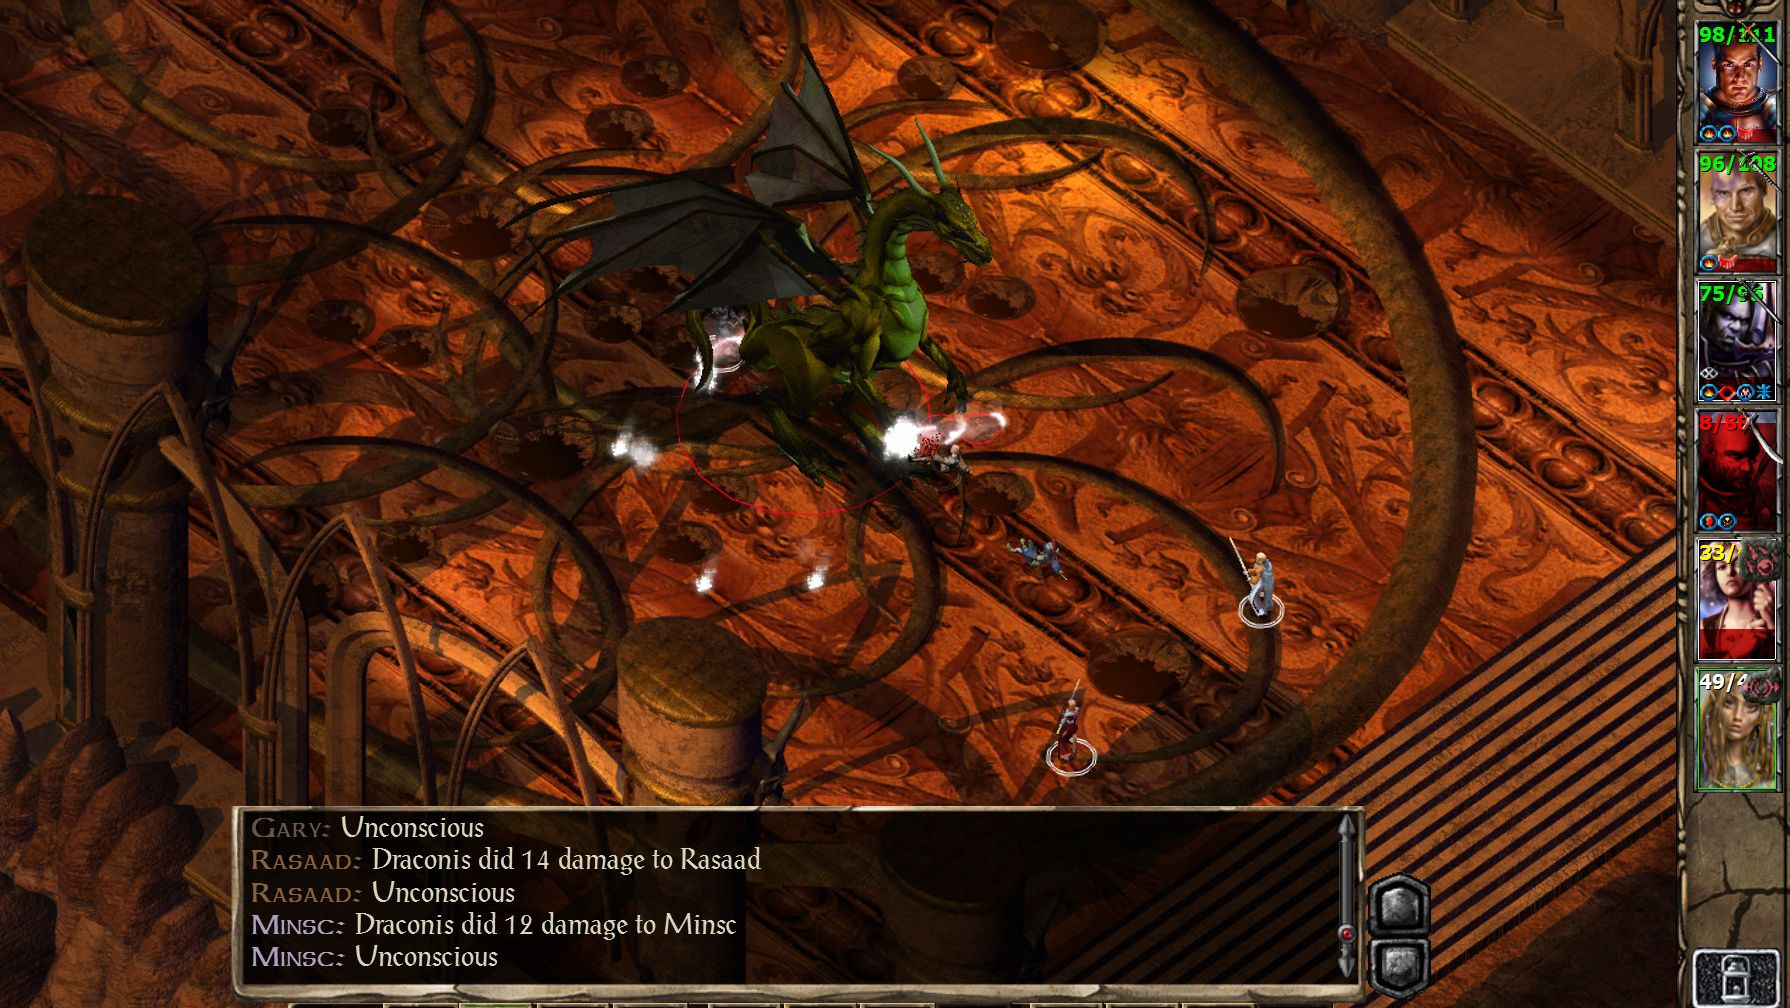 A screenshot of the party fighting a big dragon in Baldur's Gate II, because I didn't have a screenshot of the original Baldur's Gate